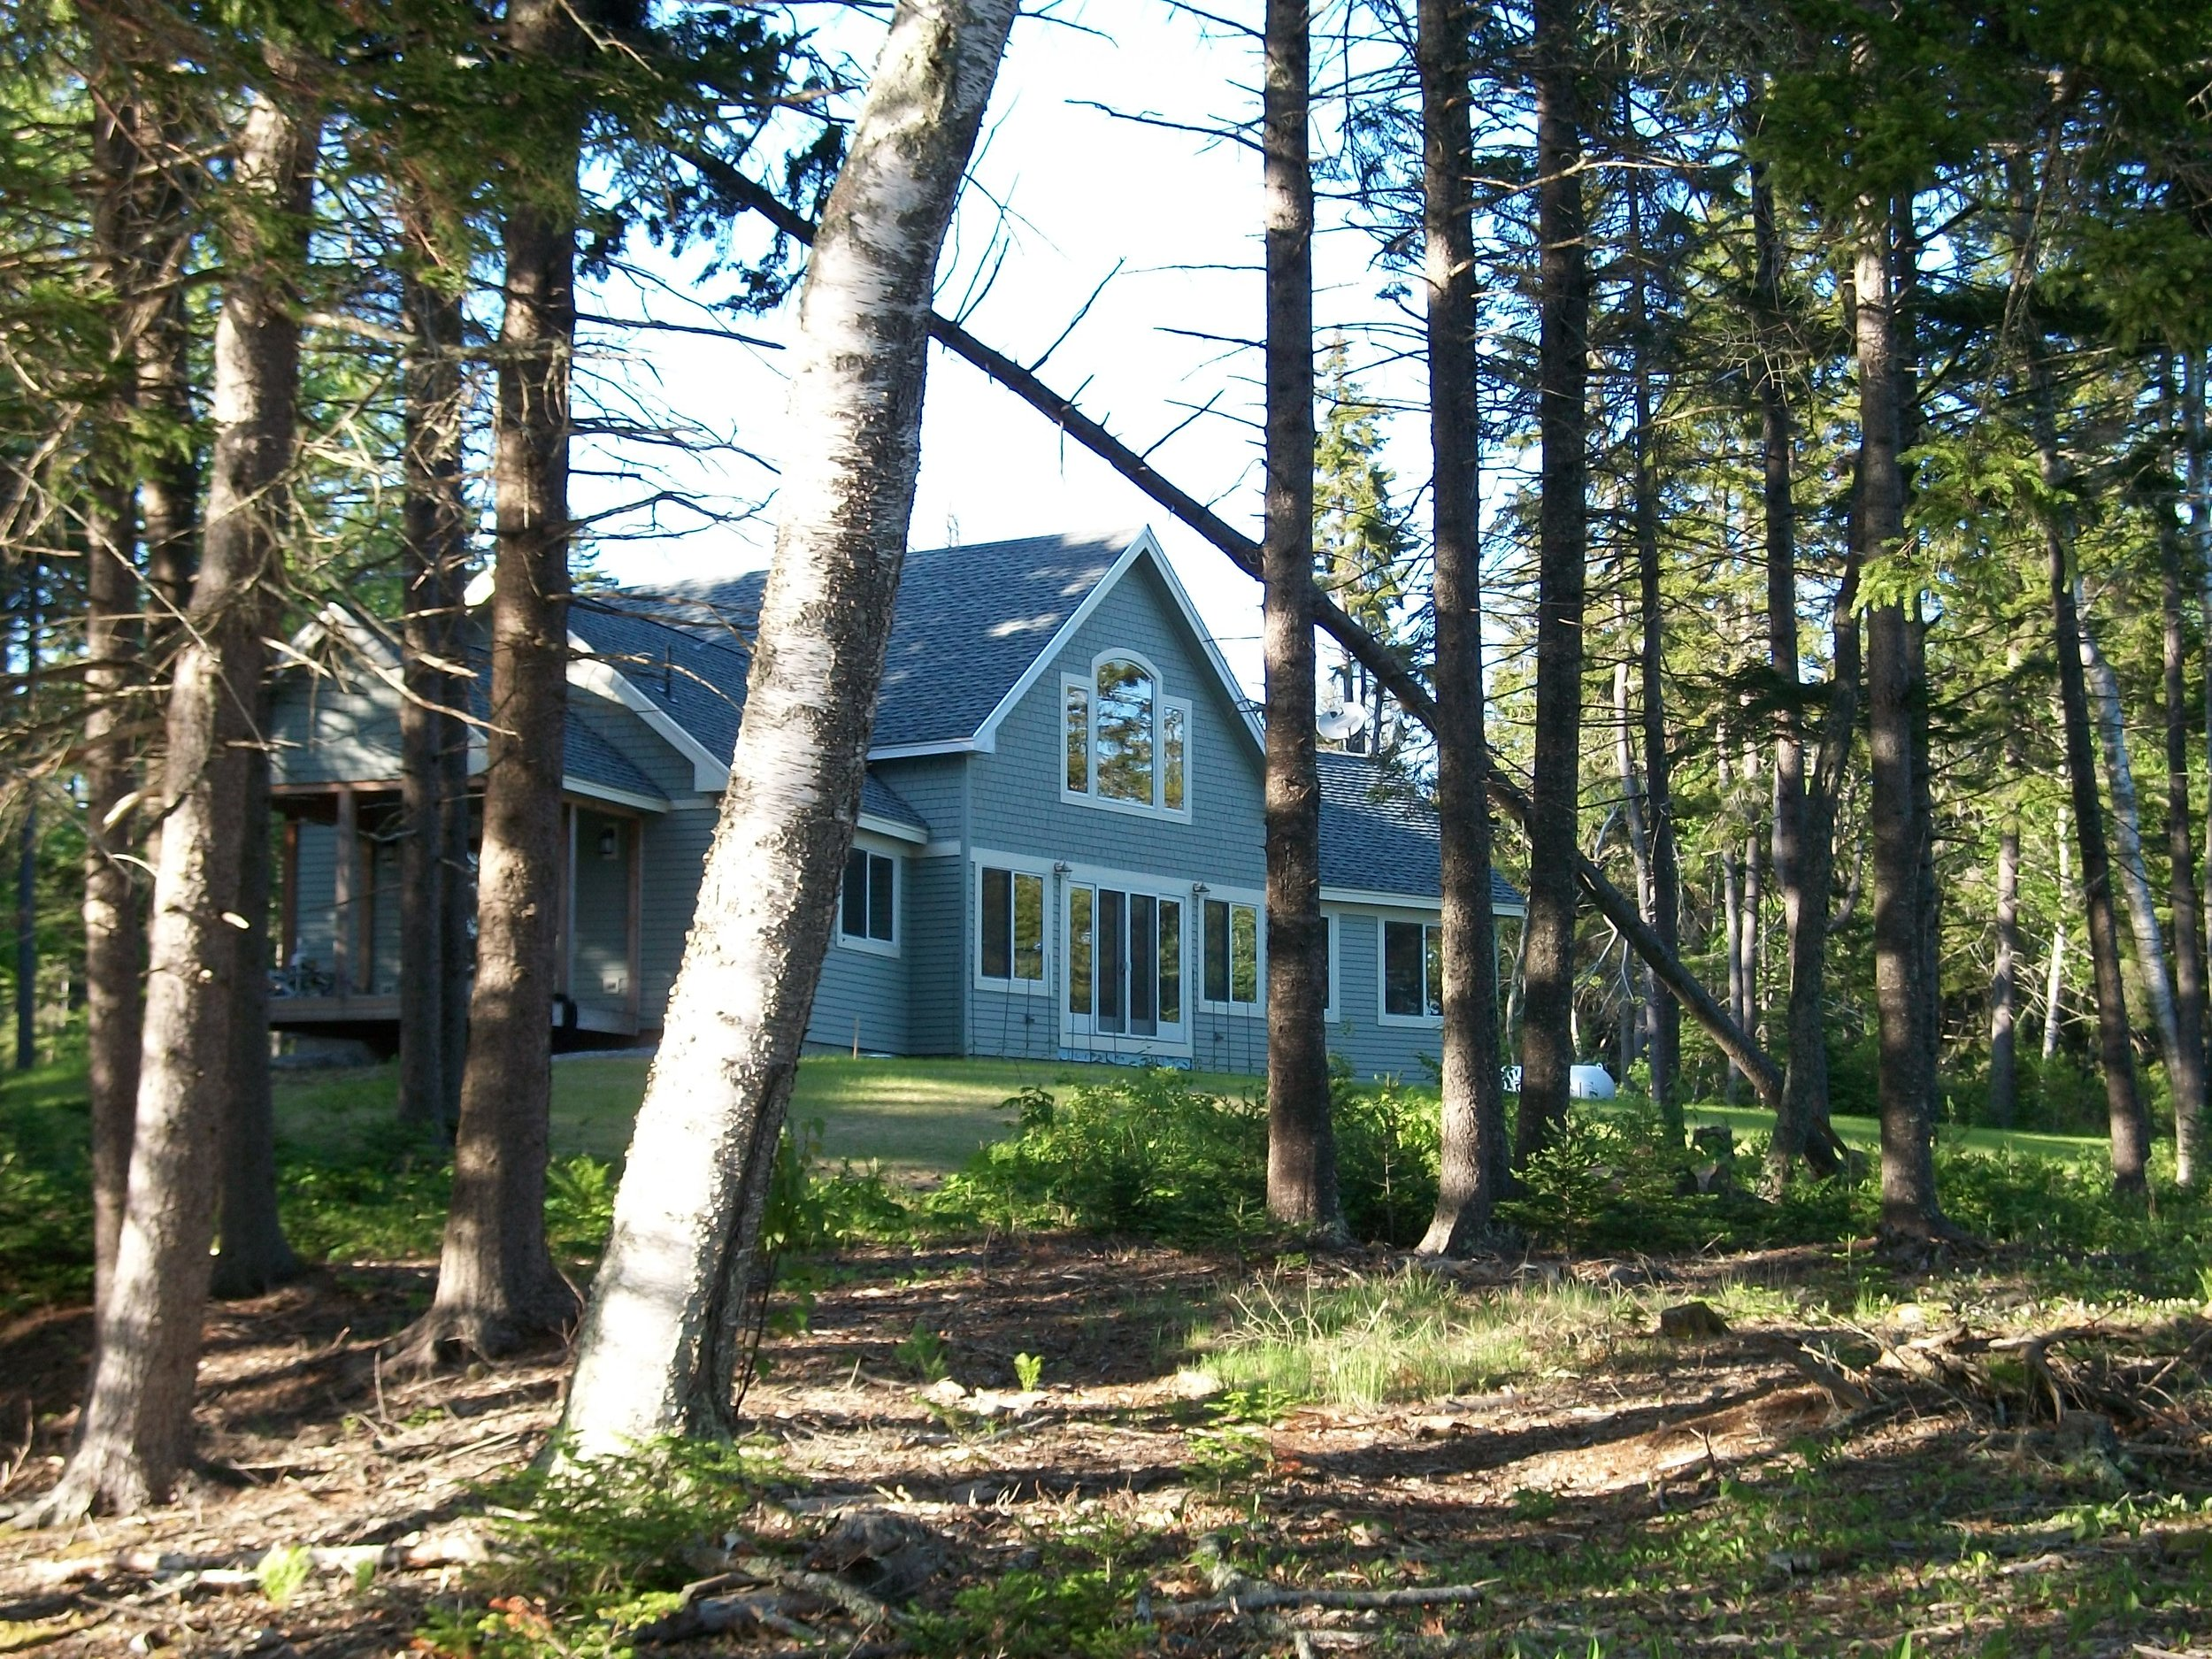 The house in Maine.